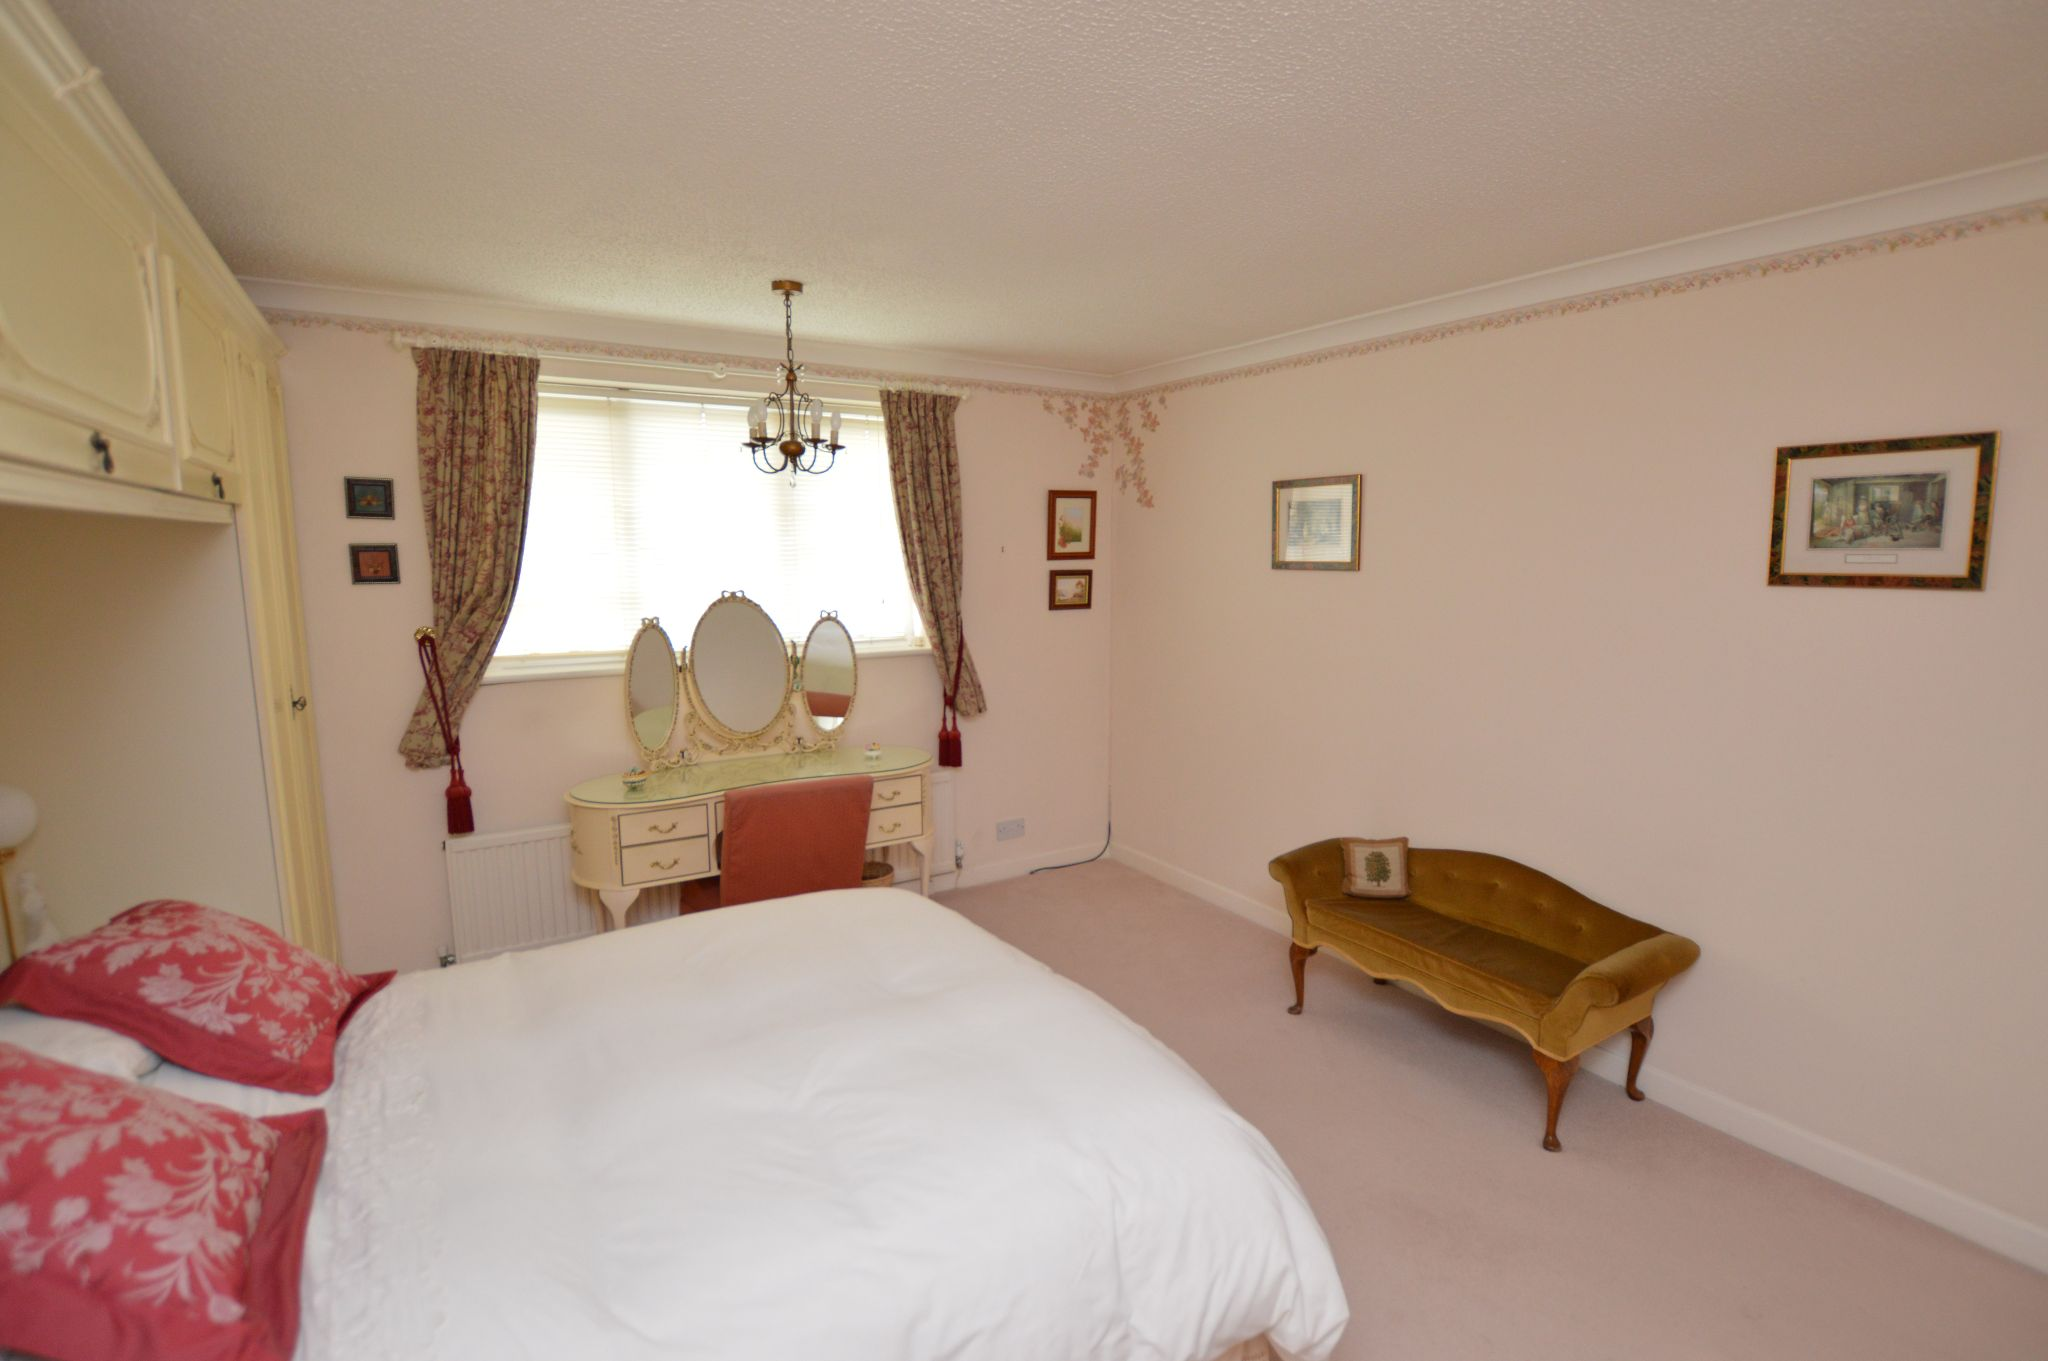 4 bedroom detached house For Sale in Abergele - Bedroom 1 View 3